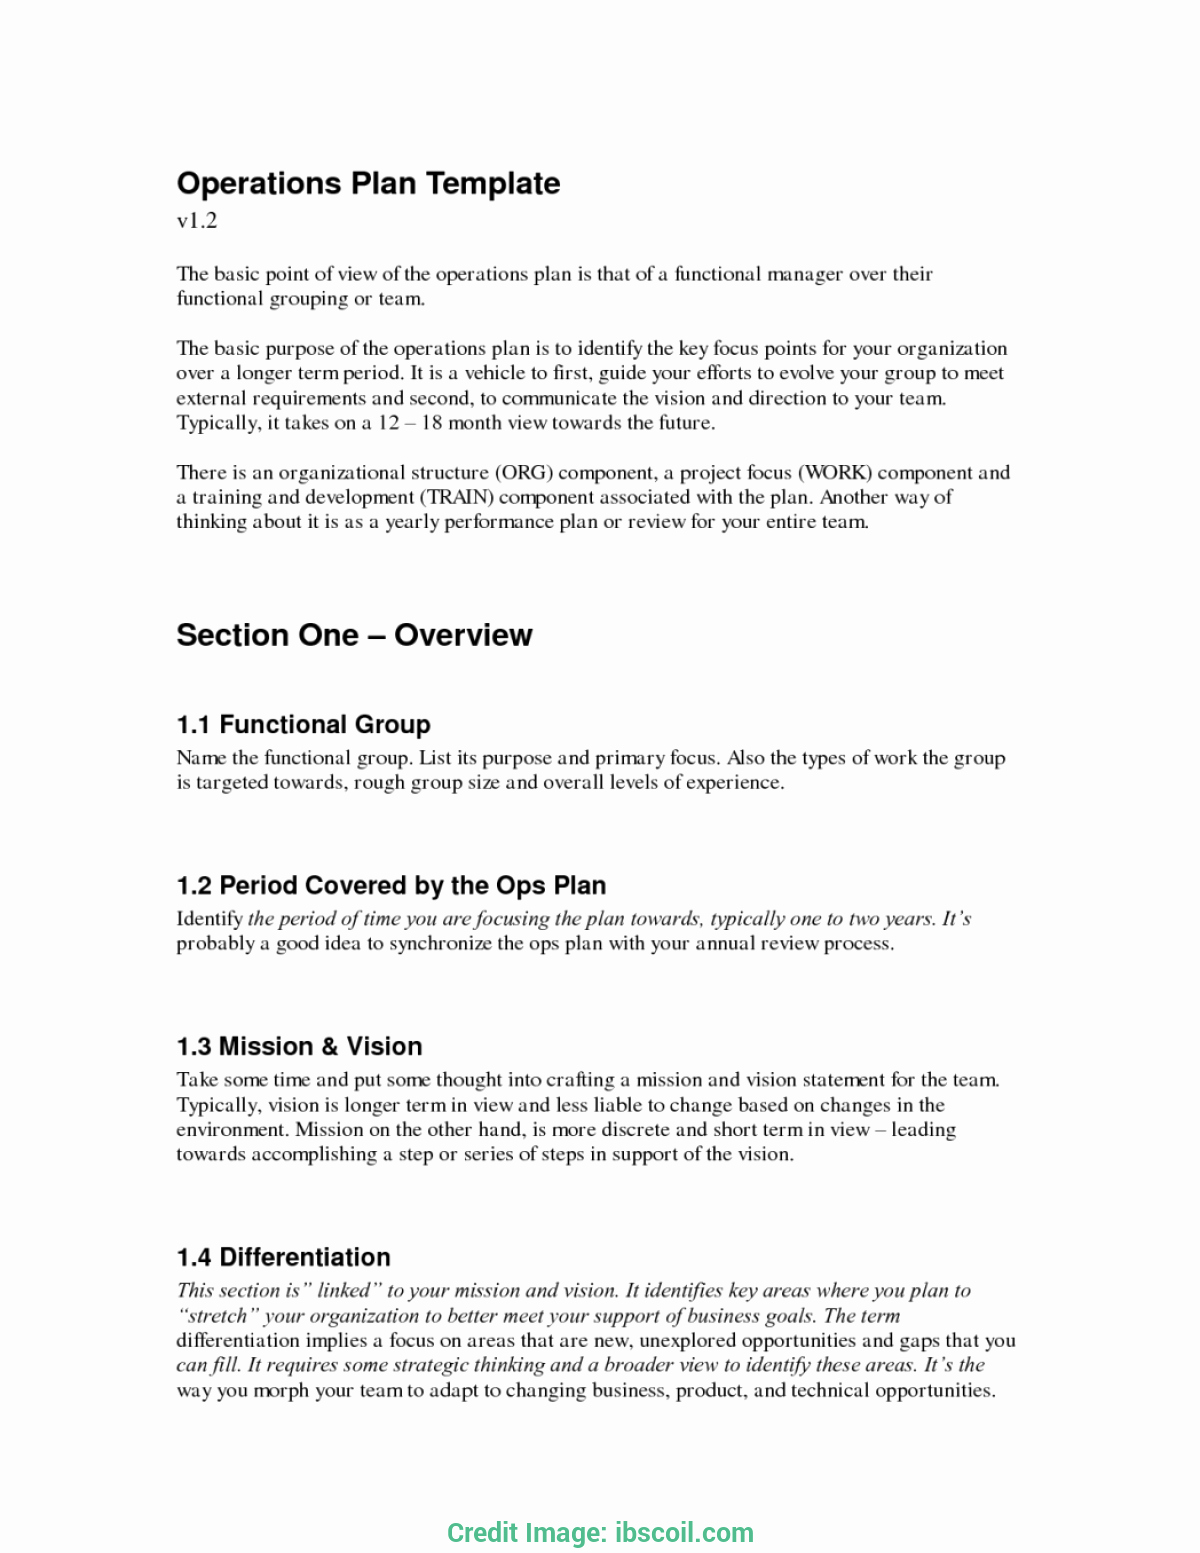 Business Operational Plan Template Beautiful 11 Operational Plan for Cleaning Services Examples Pdf